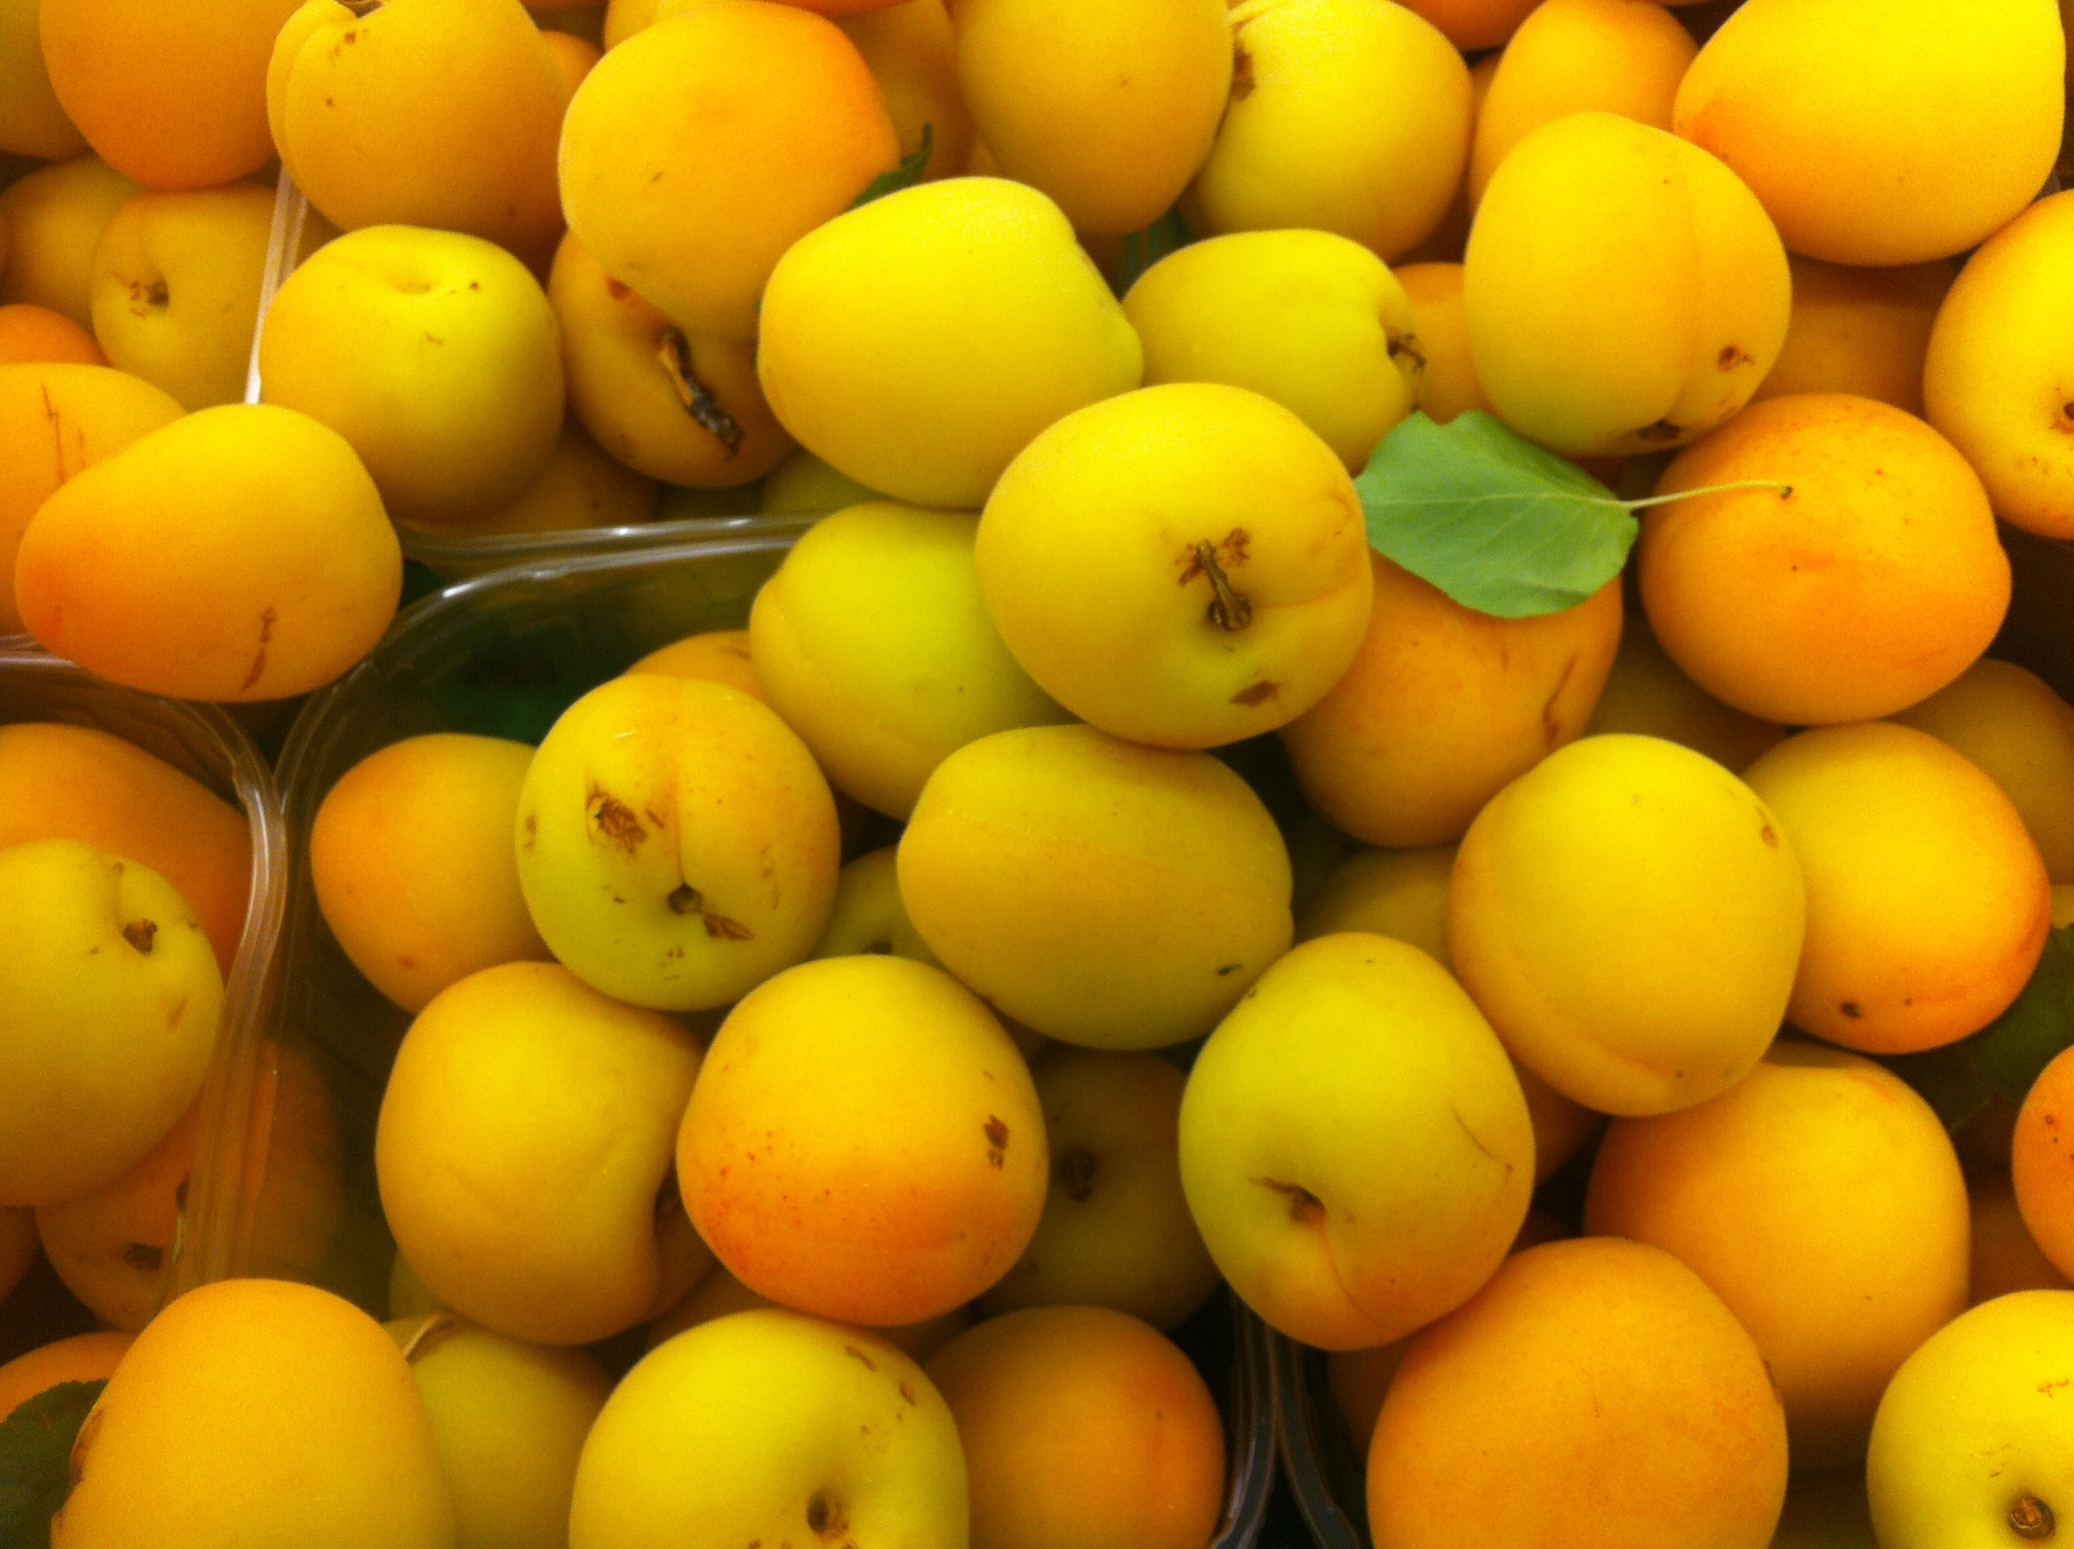 Italians love their apricots and so do I